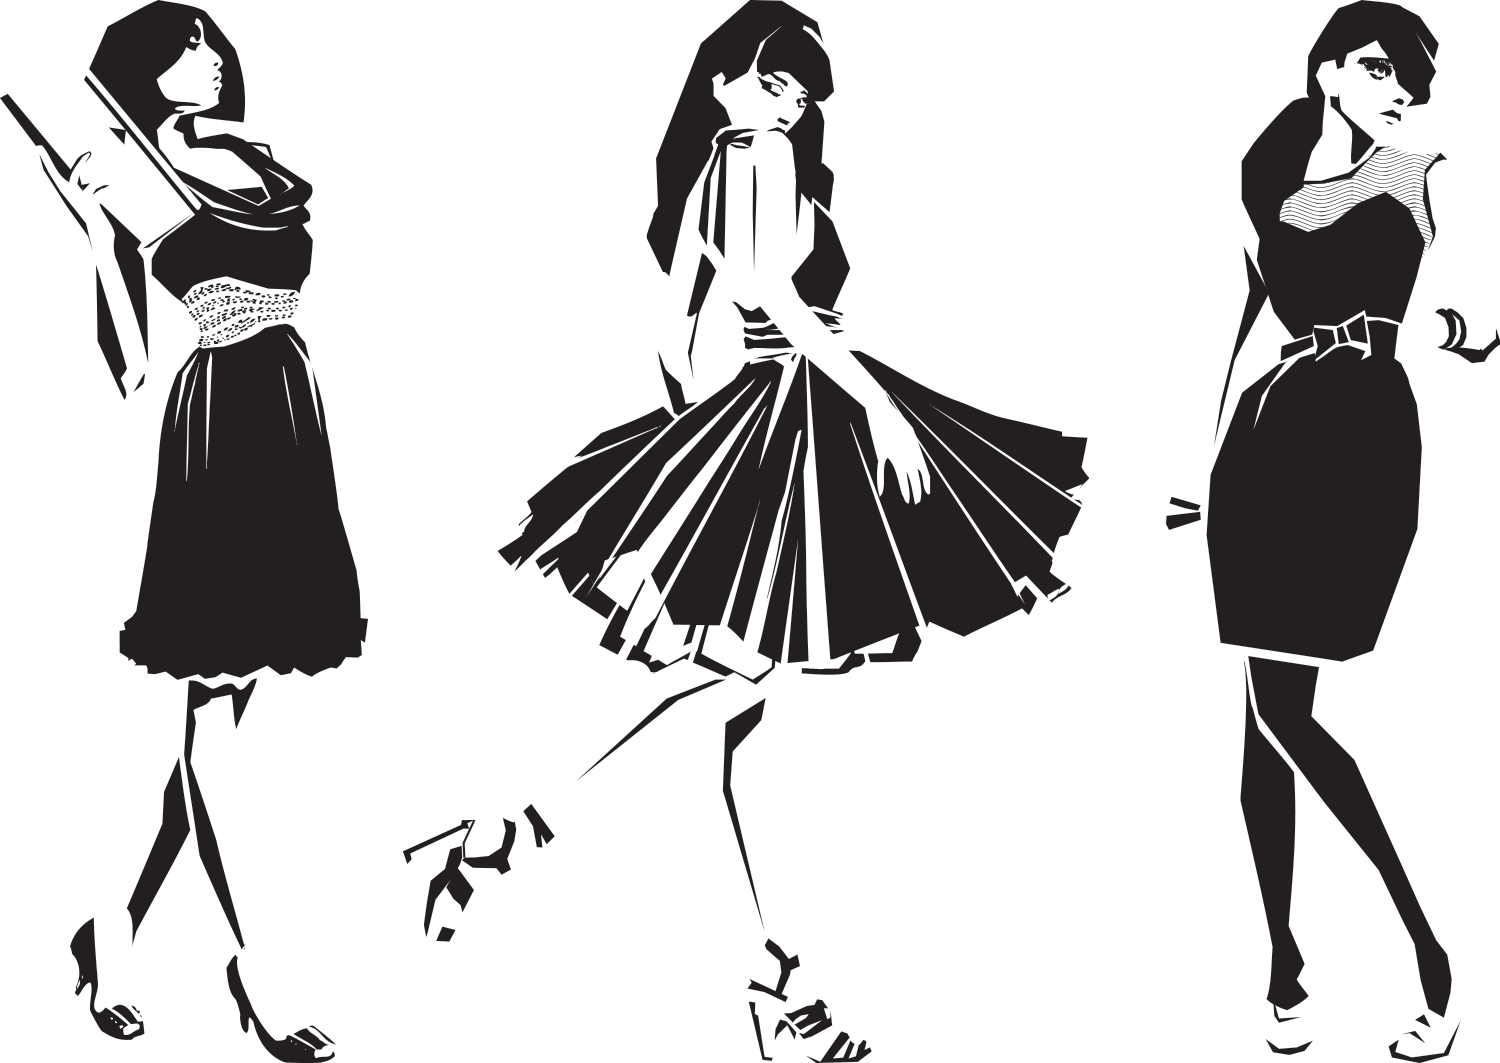 lbd002.png